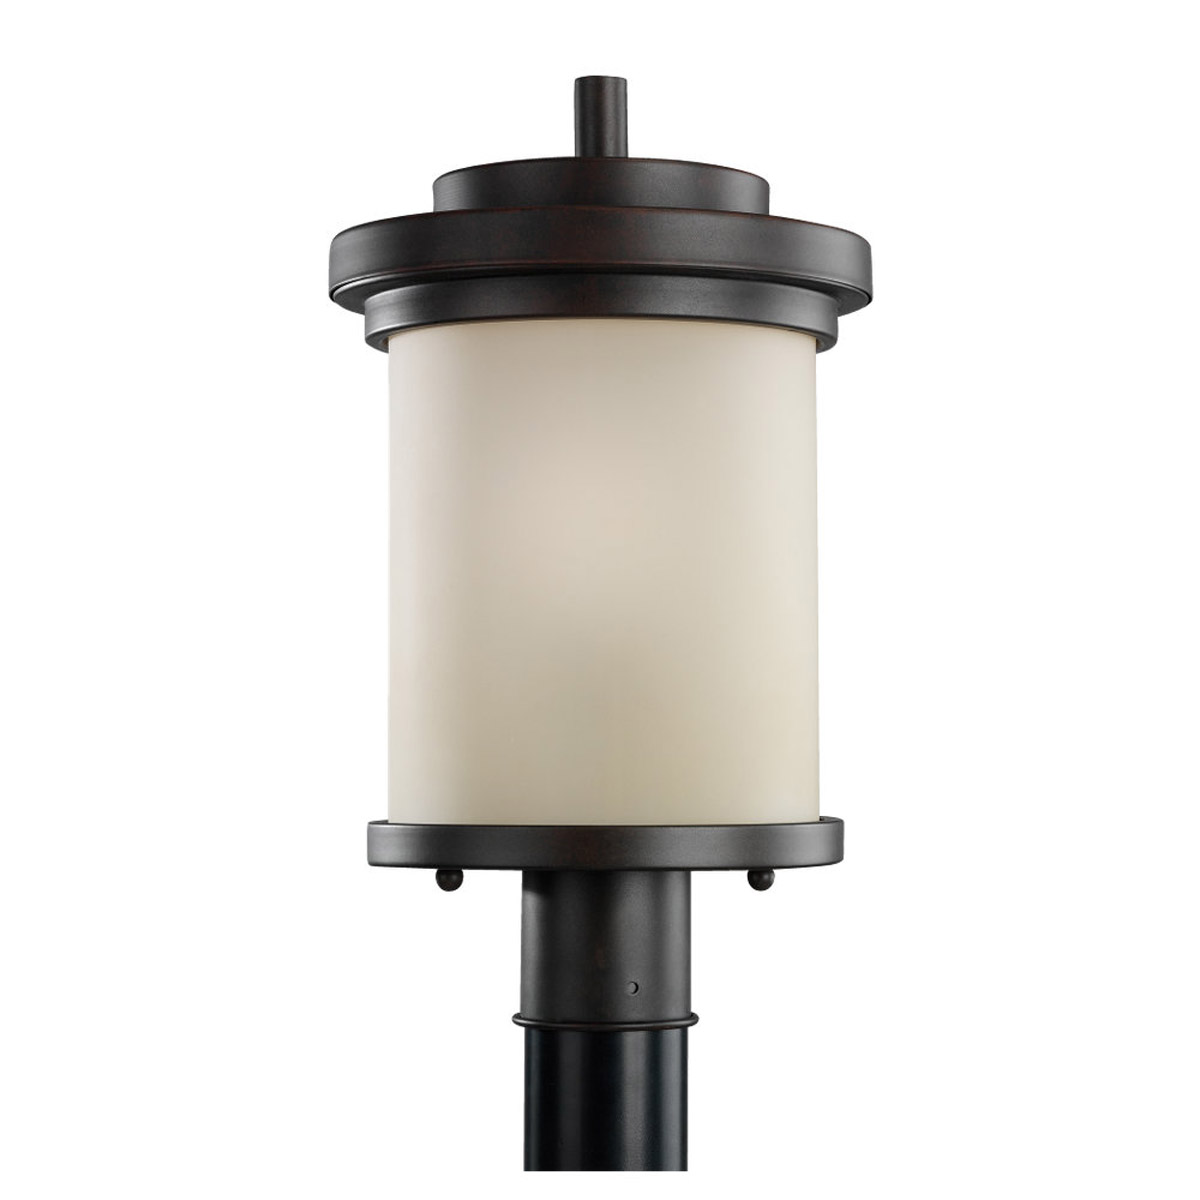 Sea Gull Lighting Winnetka 1 Light Outdoor Post Lantern in Misted Bronze 82660-814